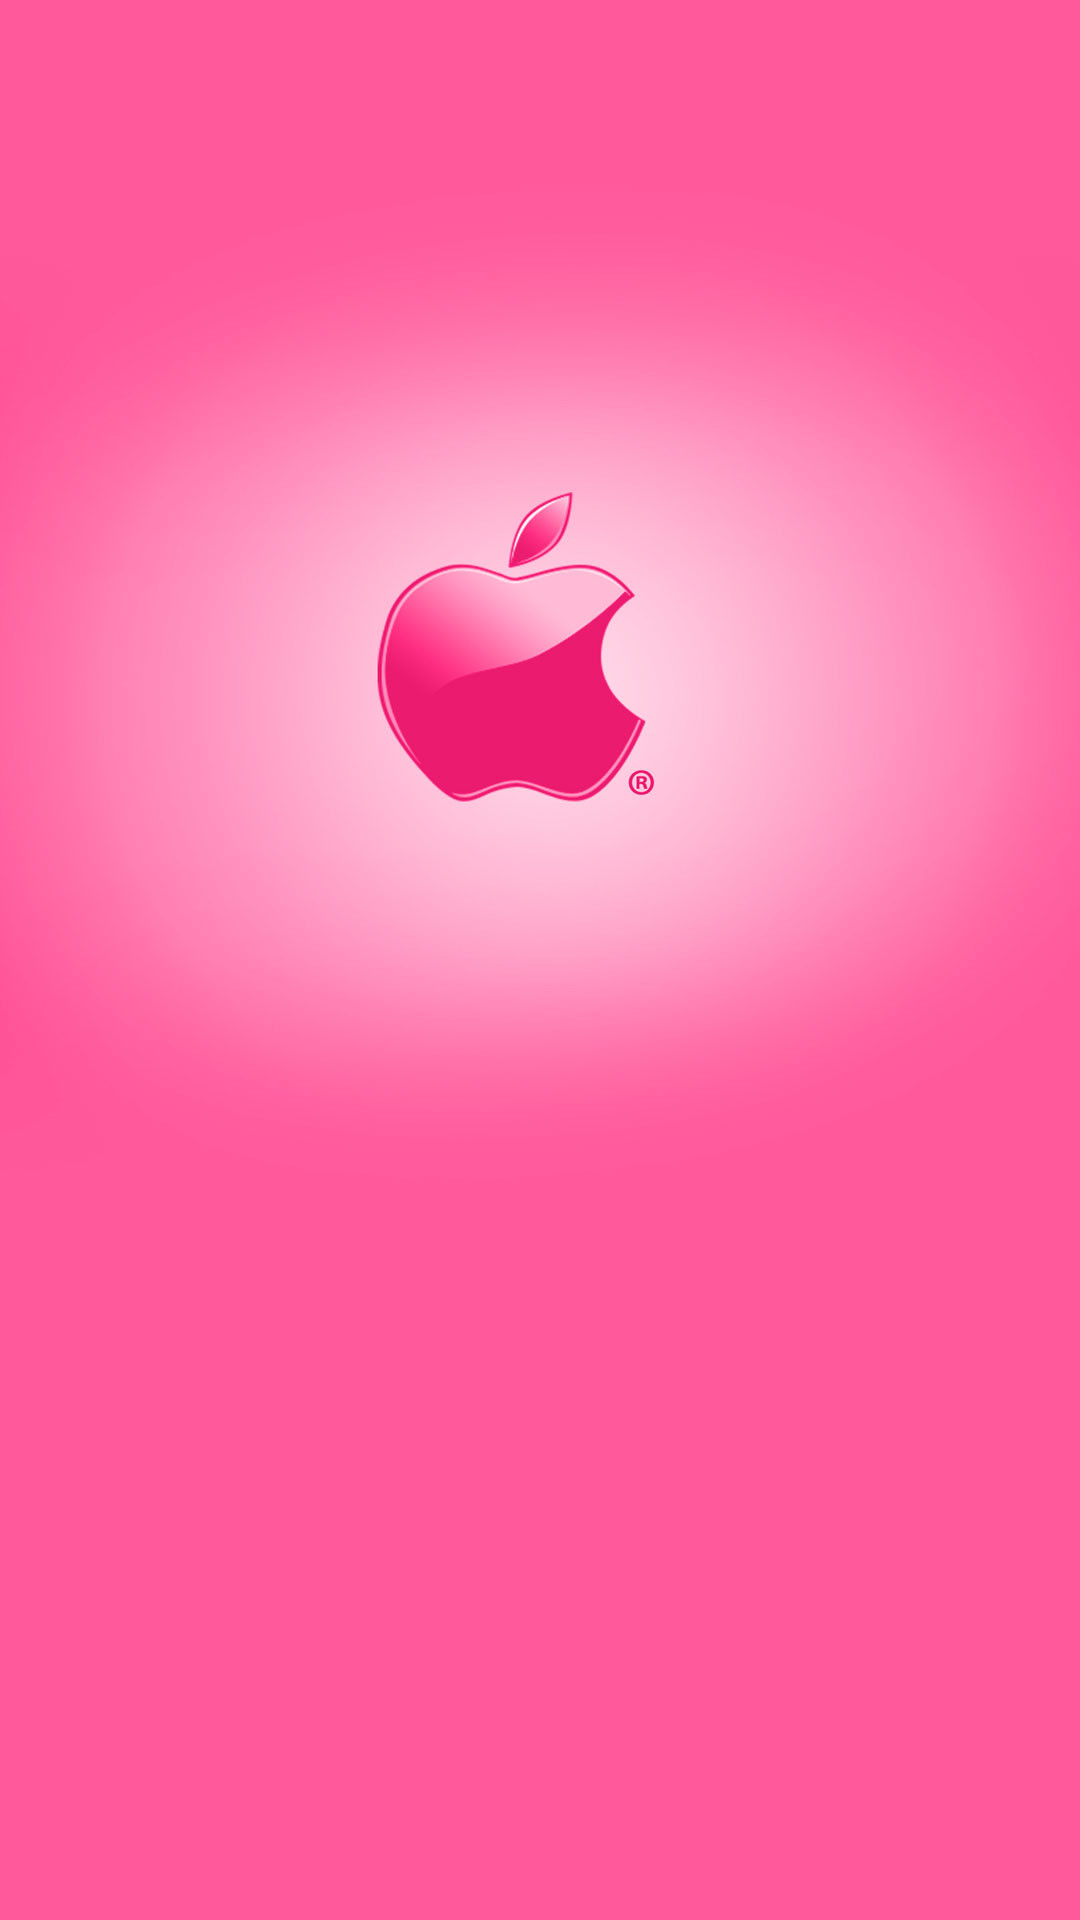 1080x1920 Pink 3D Iphone Wallpaper